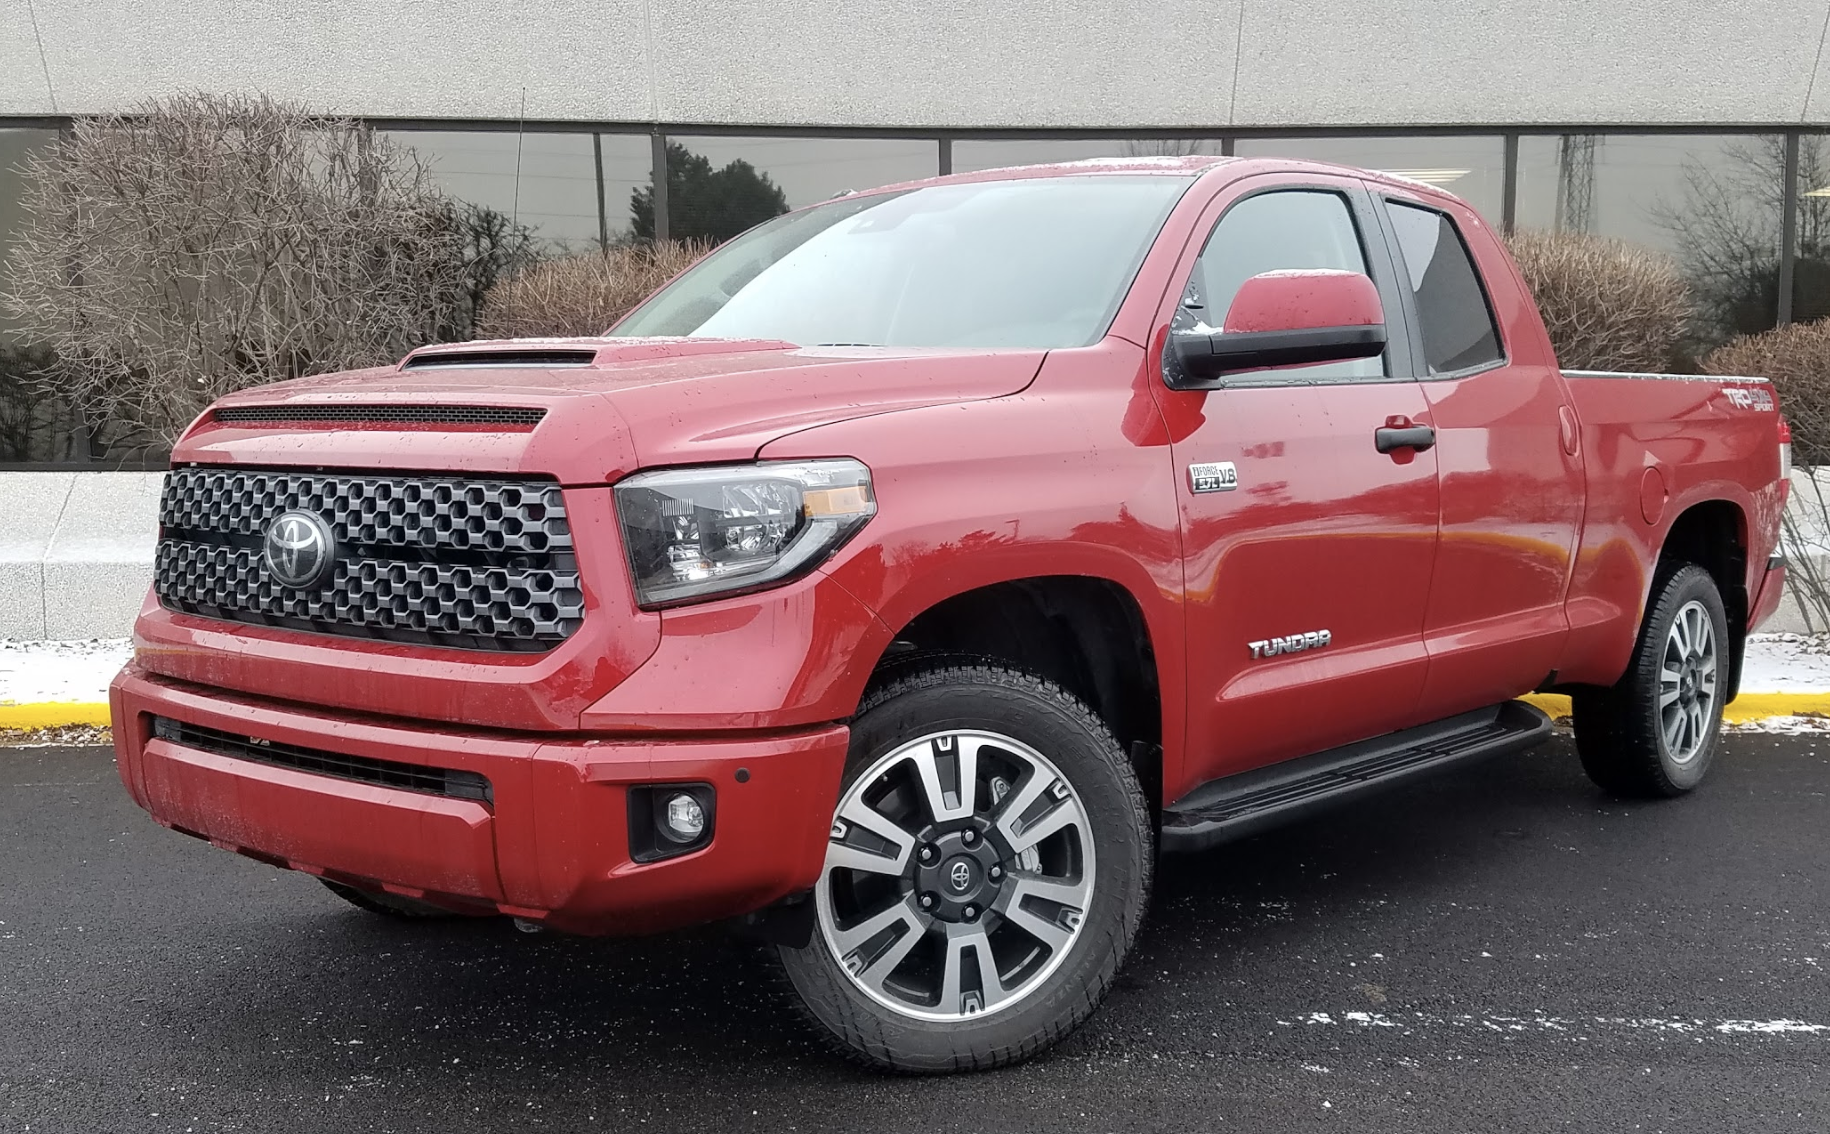 Toyota Pickup 4x4 >> 2019 Toyota Tundra SR5 Double Cab 4x4 The Daily Drive | Consumer Guide®